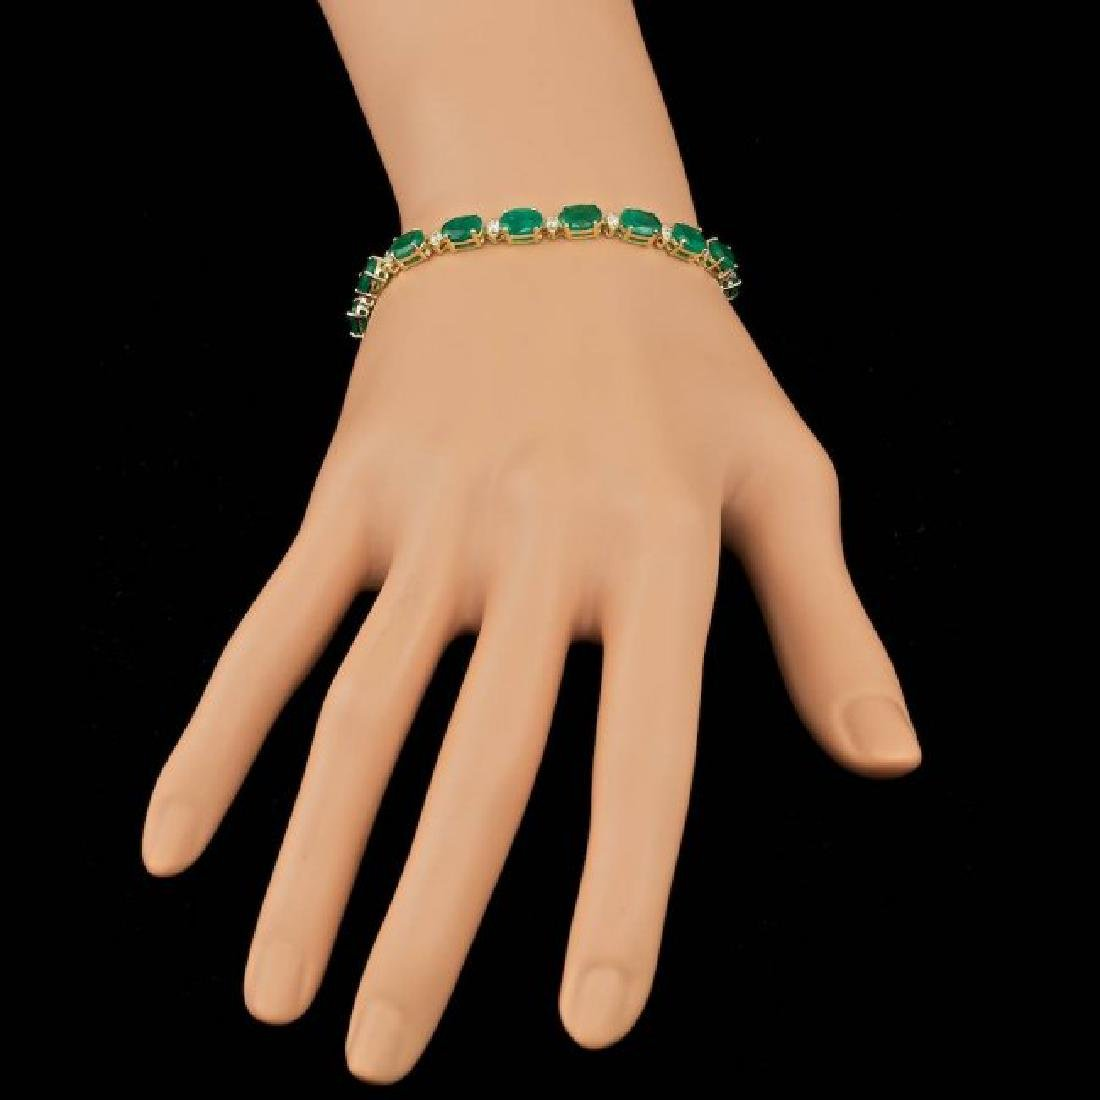 14k Gold 14.00ct Emerald 1.00ct Diamond Bracelet - 7